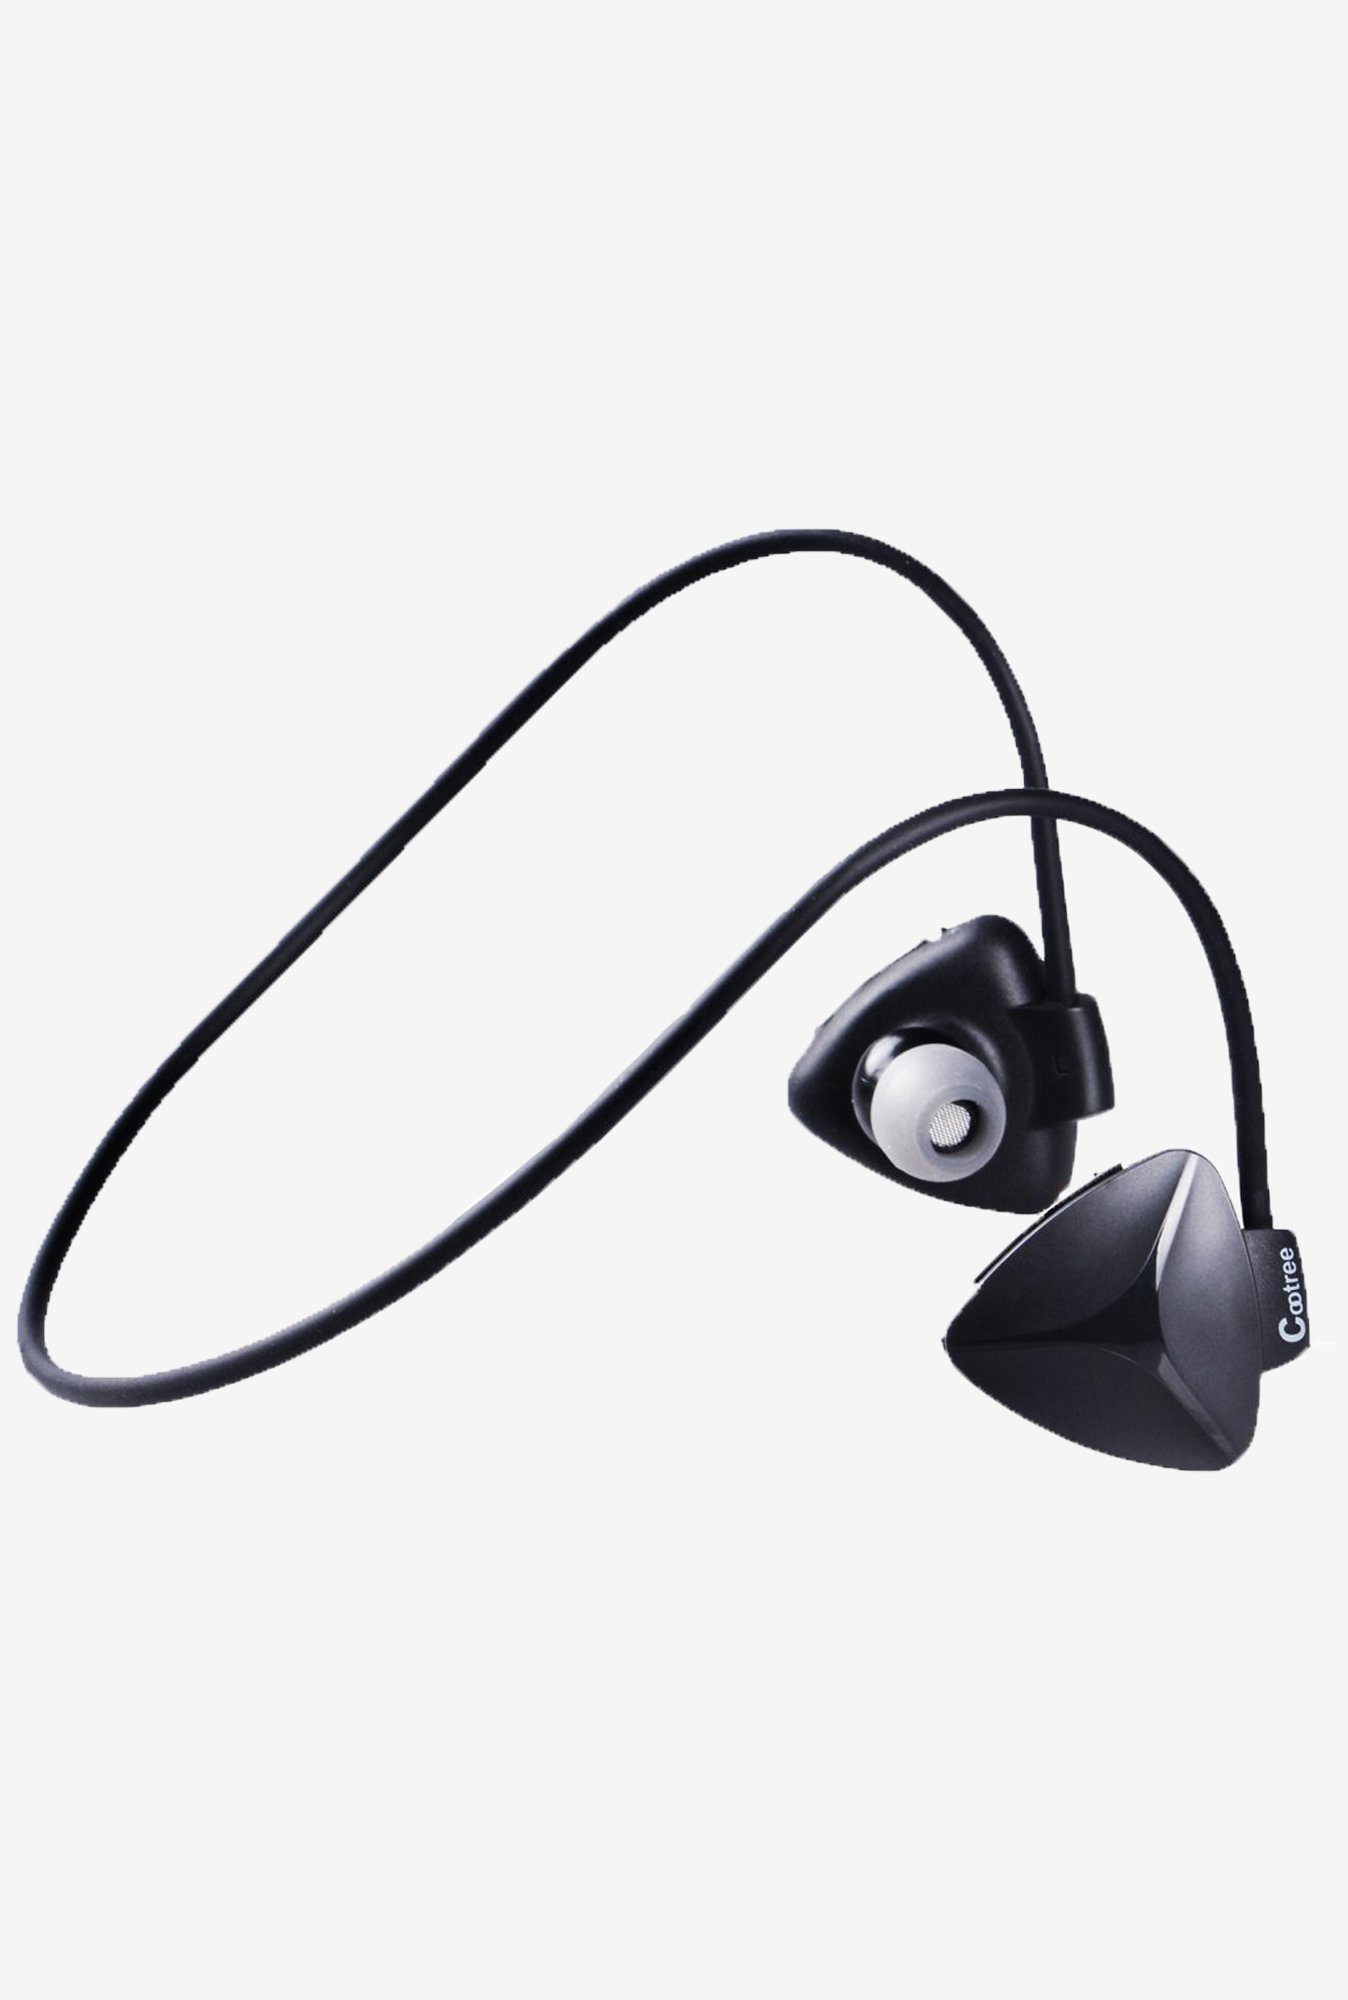 CootreeA C252 Sweatproof In the Ear Headphone (Black)